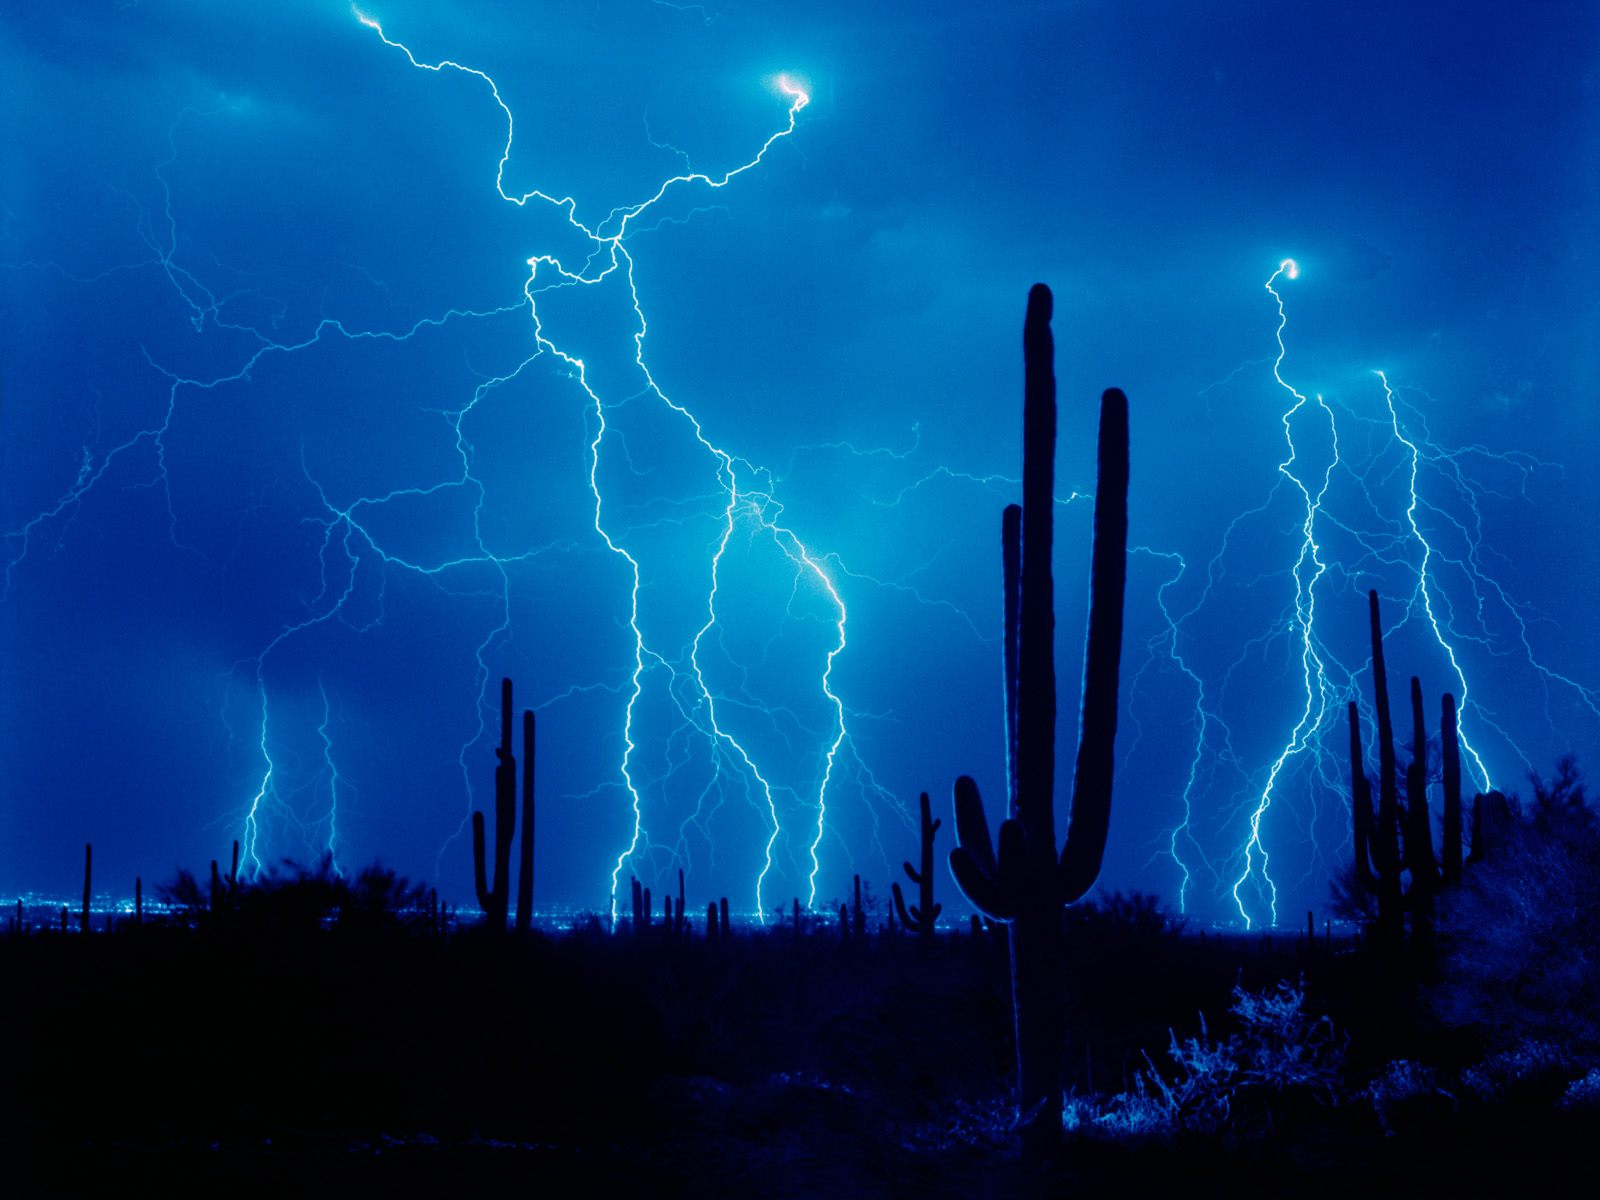 click to free download the wallpaper--Pics of Nature Landscape, Cactus Under the Blue Sky and Lightning, Tough and Brave